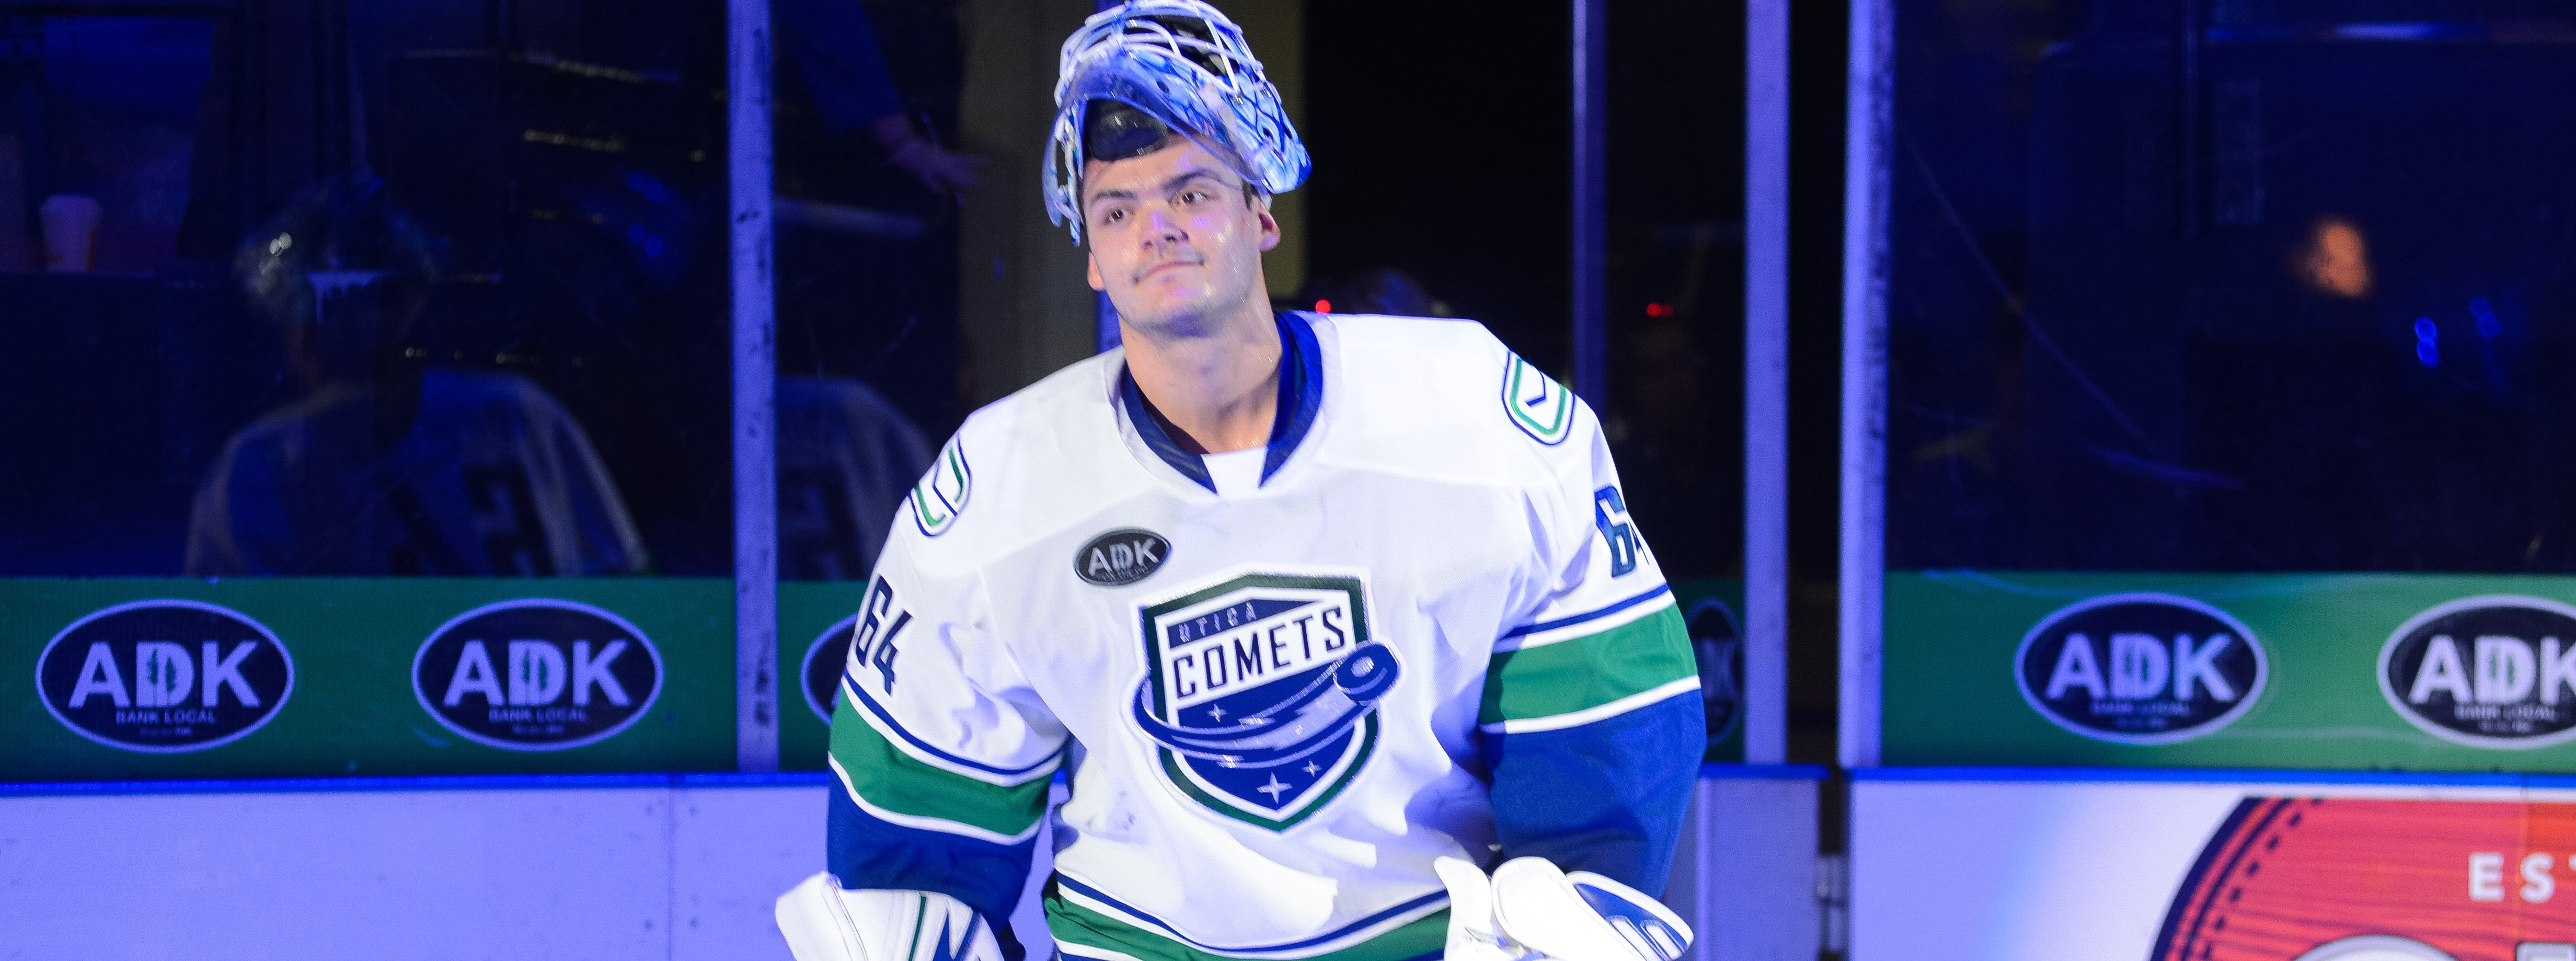 BREAKING THE ICE: MIKEY DIPIETRO